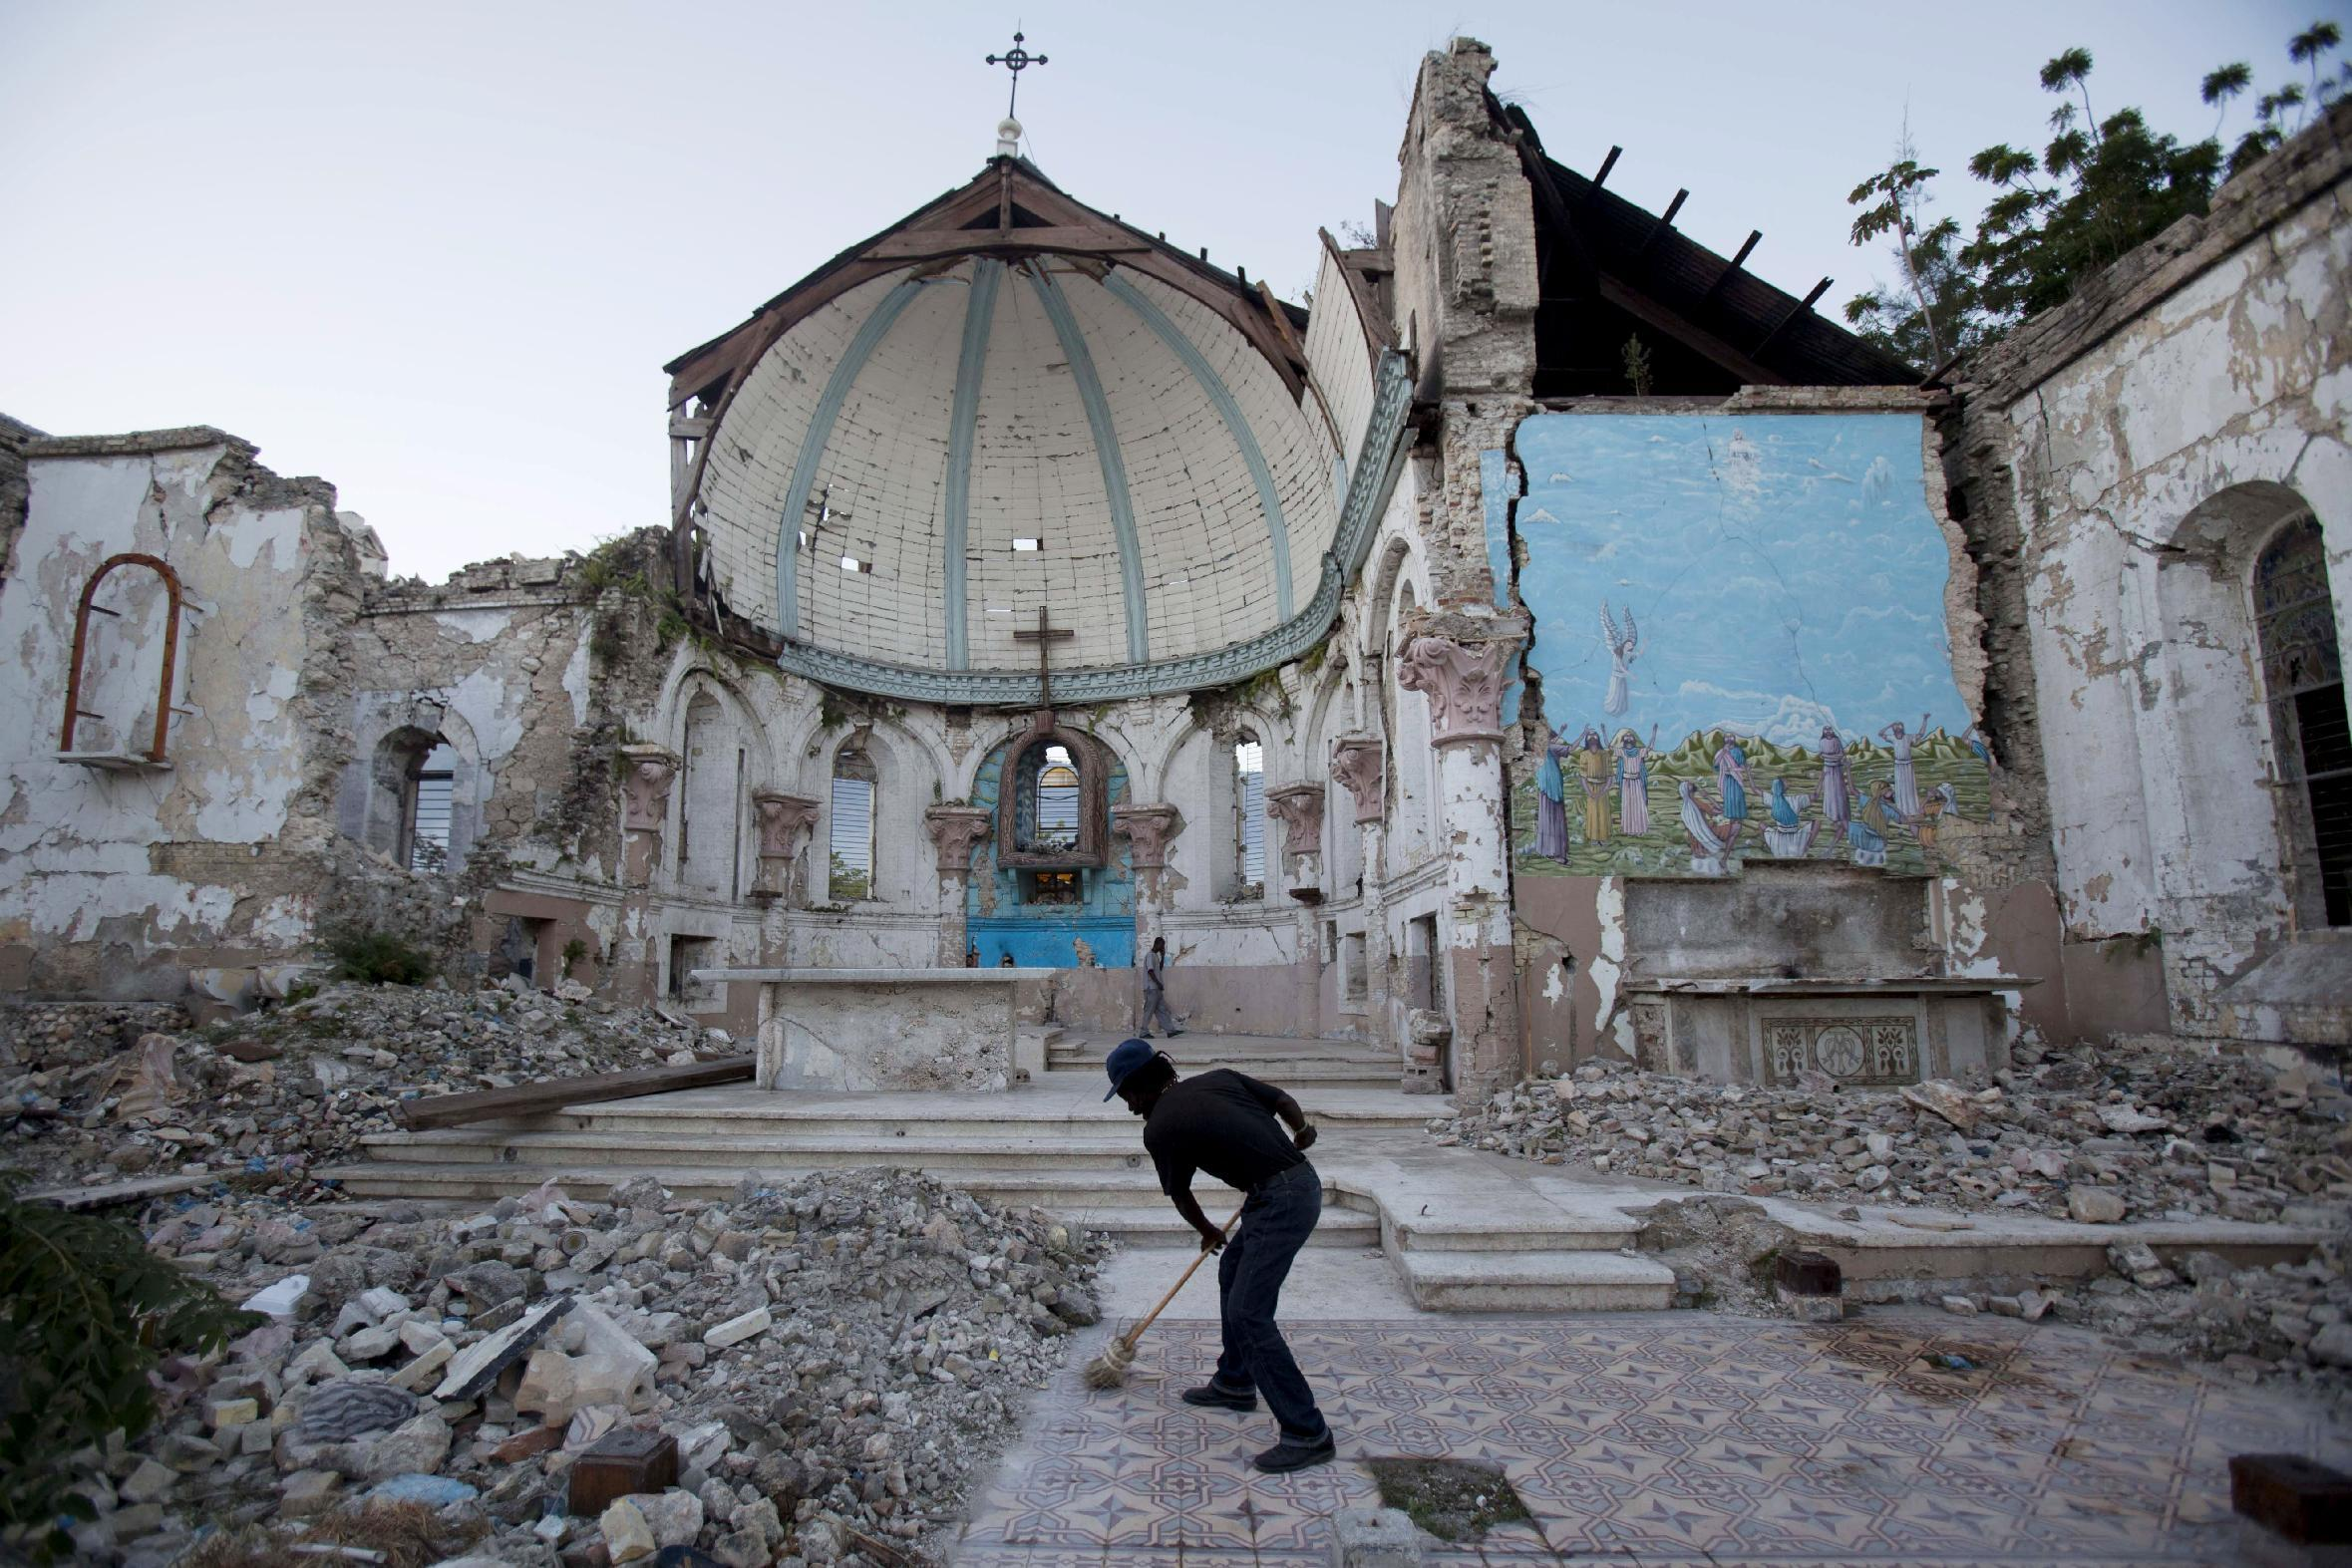 A man sweeps an exposed tiled area of the earthquake-damaged Santa Ana Catholic church, where he now lives, in Port-au-Prince, Haiti, Saturday, Jan. 12, 2013. Haitians recalled Saturday the tens of thousands of people who lost their lives in a devastating earthquake three years ago, marking the disaster's anniversary. Most of the rubble created by the quake has since been carted away but more than 350,000 people still live in displacement camps. (AP Photo/Dieu Nalio Chery)